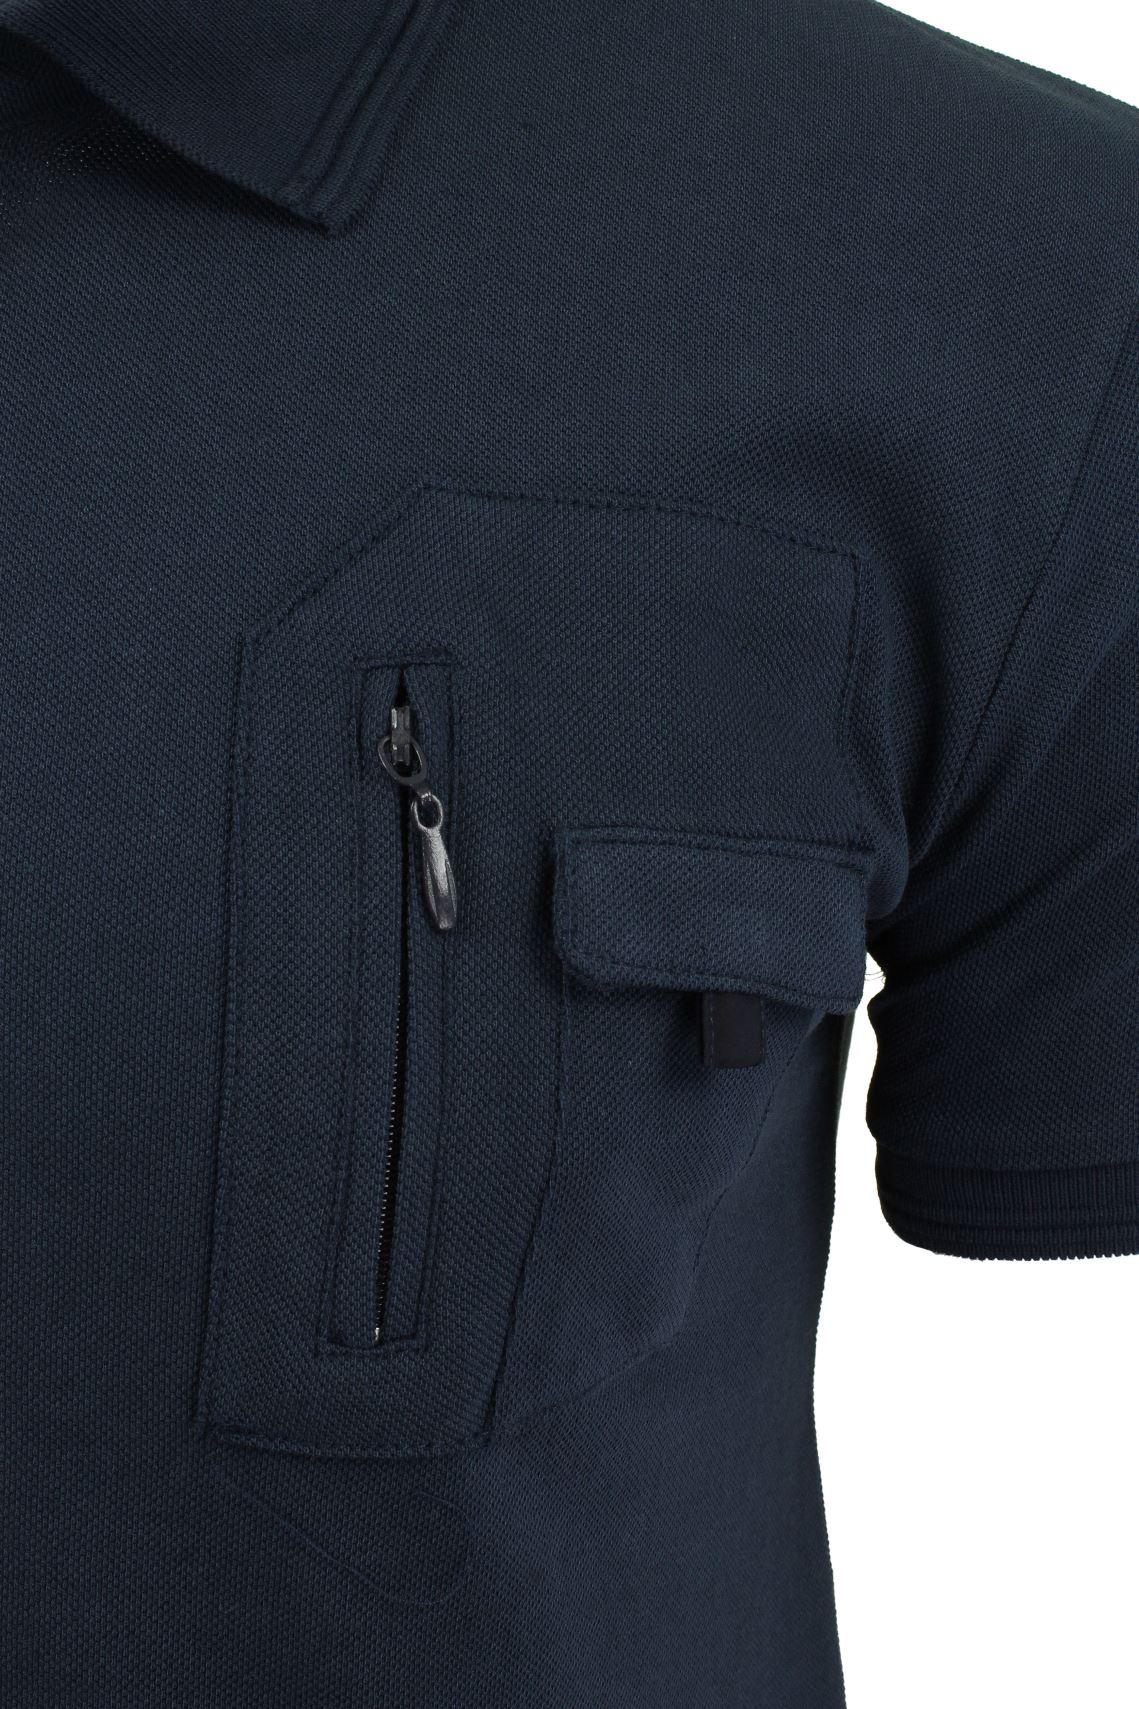 Mens-Short-Sleeved-Polo-Shirt-from-the-Blackout-Collection-by-Voi-Jeans thumbnail 9